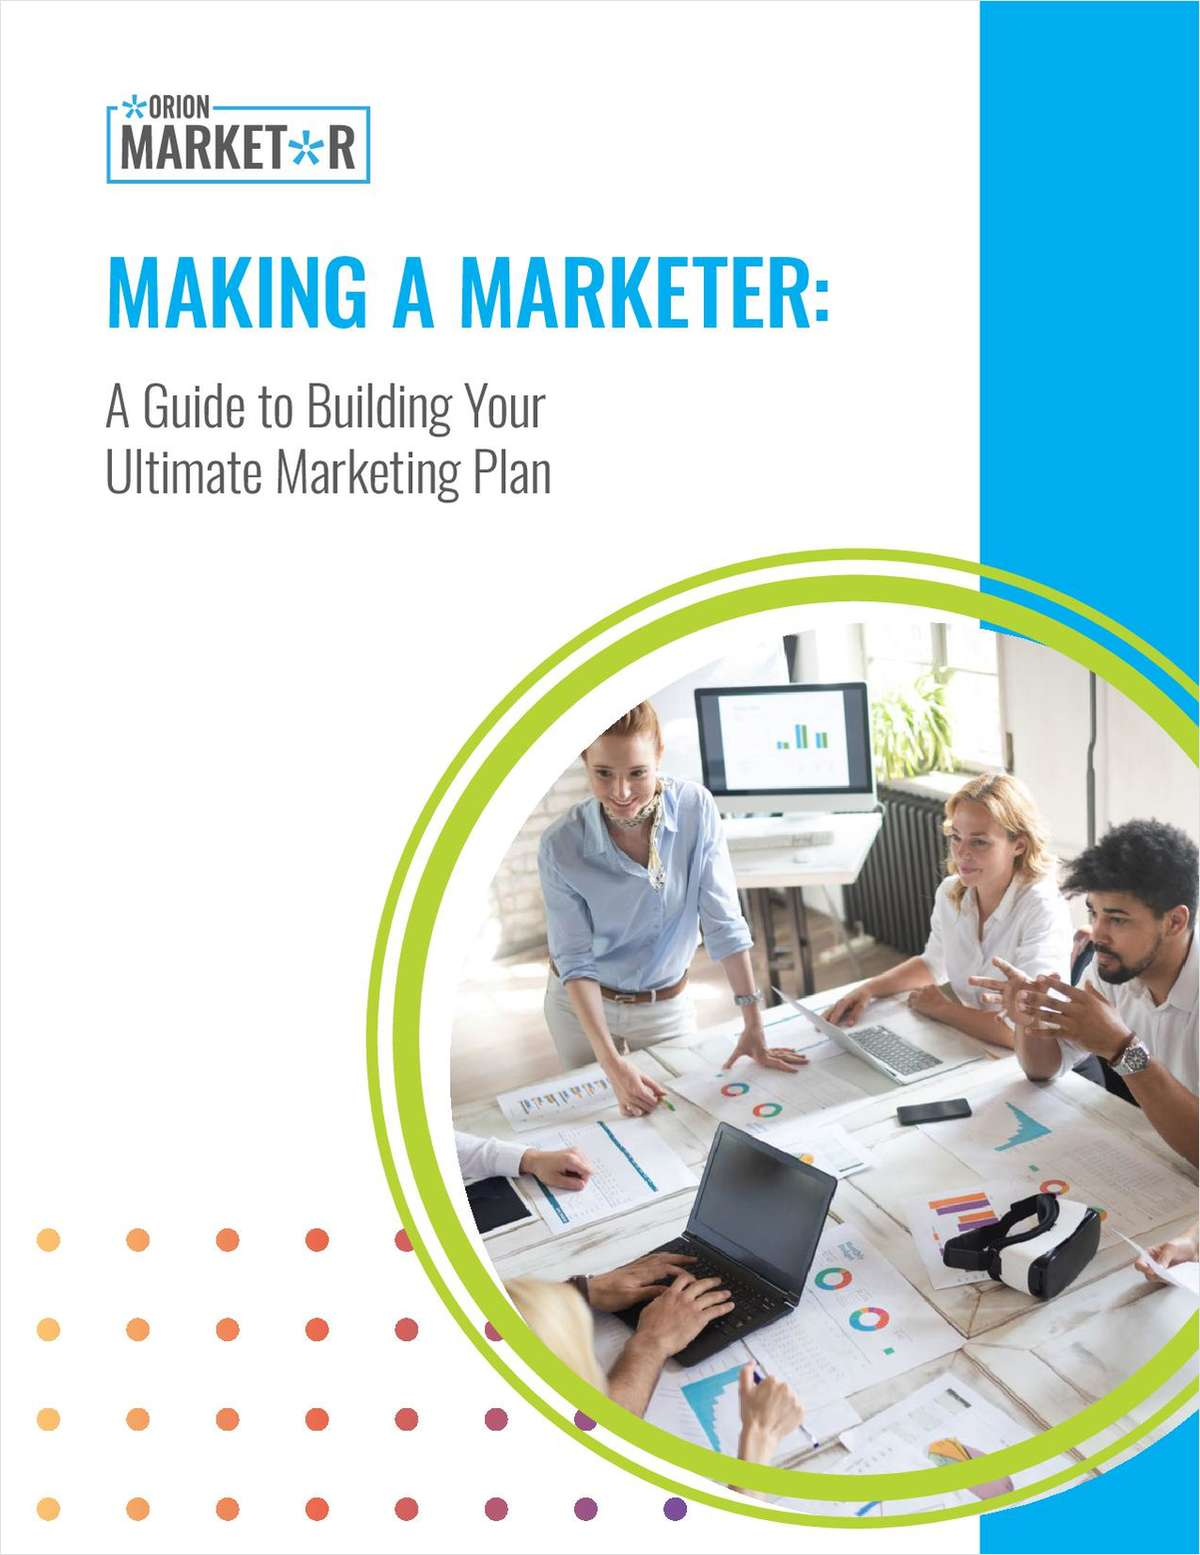 Making a Marketer: A Guide to Building Your Ultimate Marketing Plan